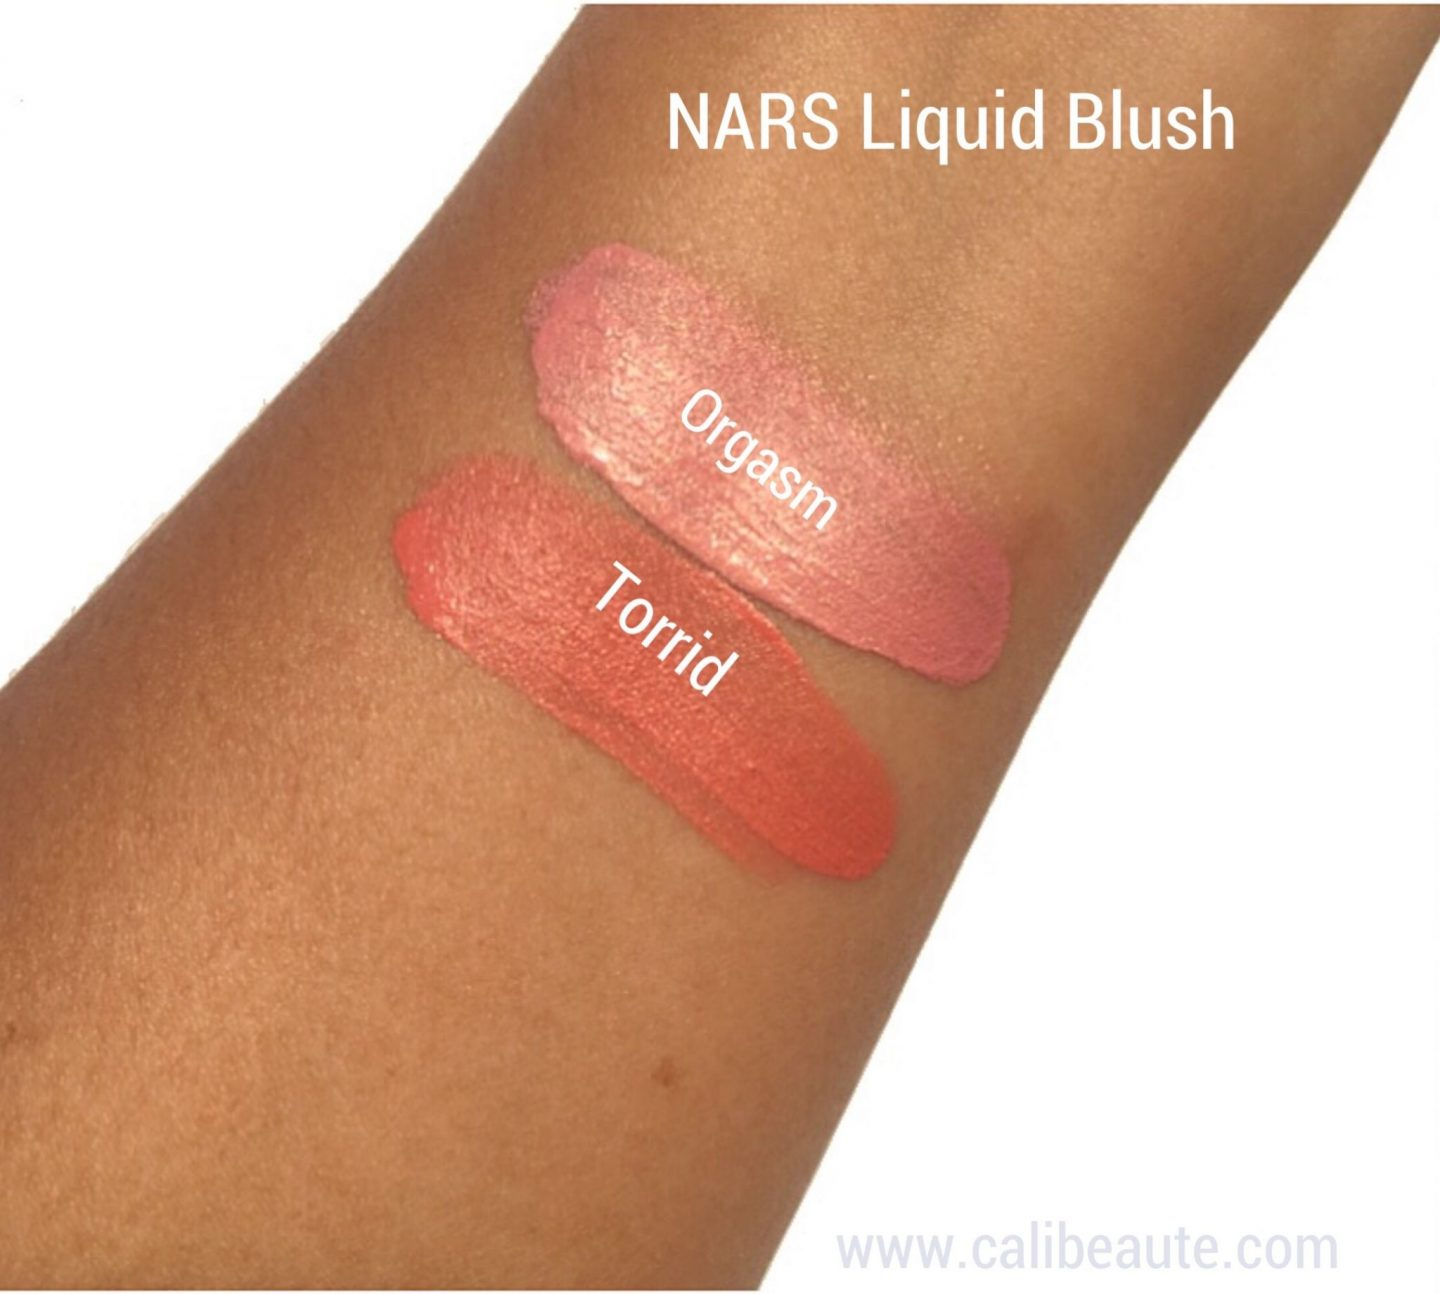 NARS liquid blush swatches Orgasm Laguna|www.calibeaute.com